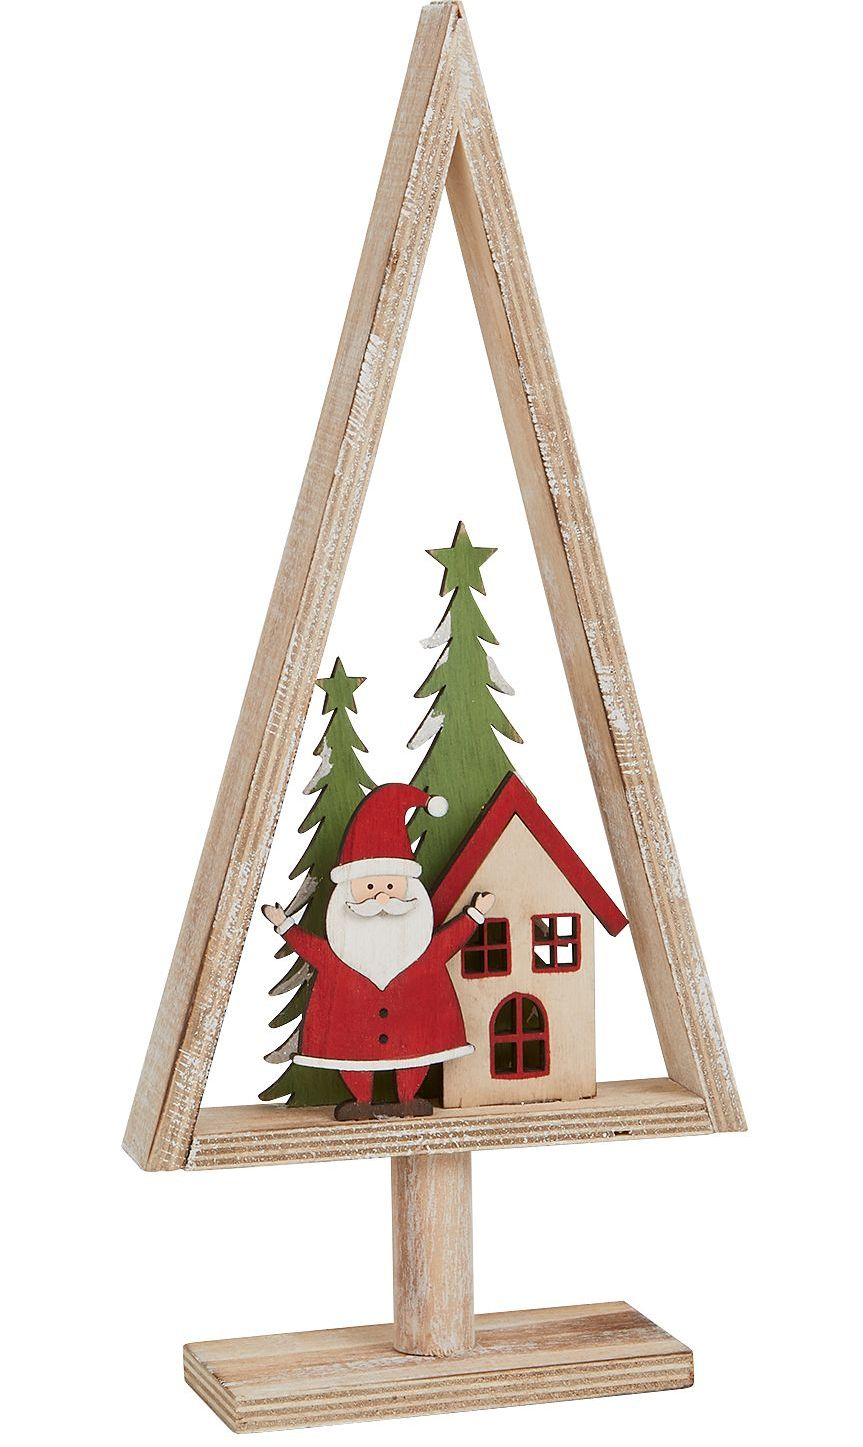 Rustic Wooden Santa in Christmas Tree Decoration - Archipelago